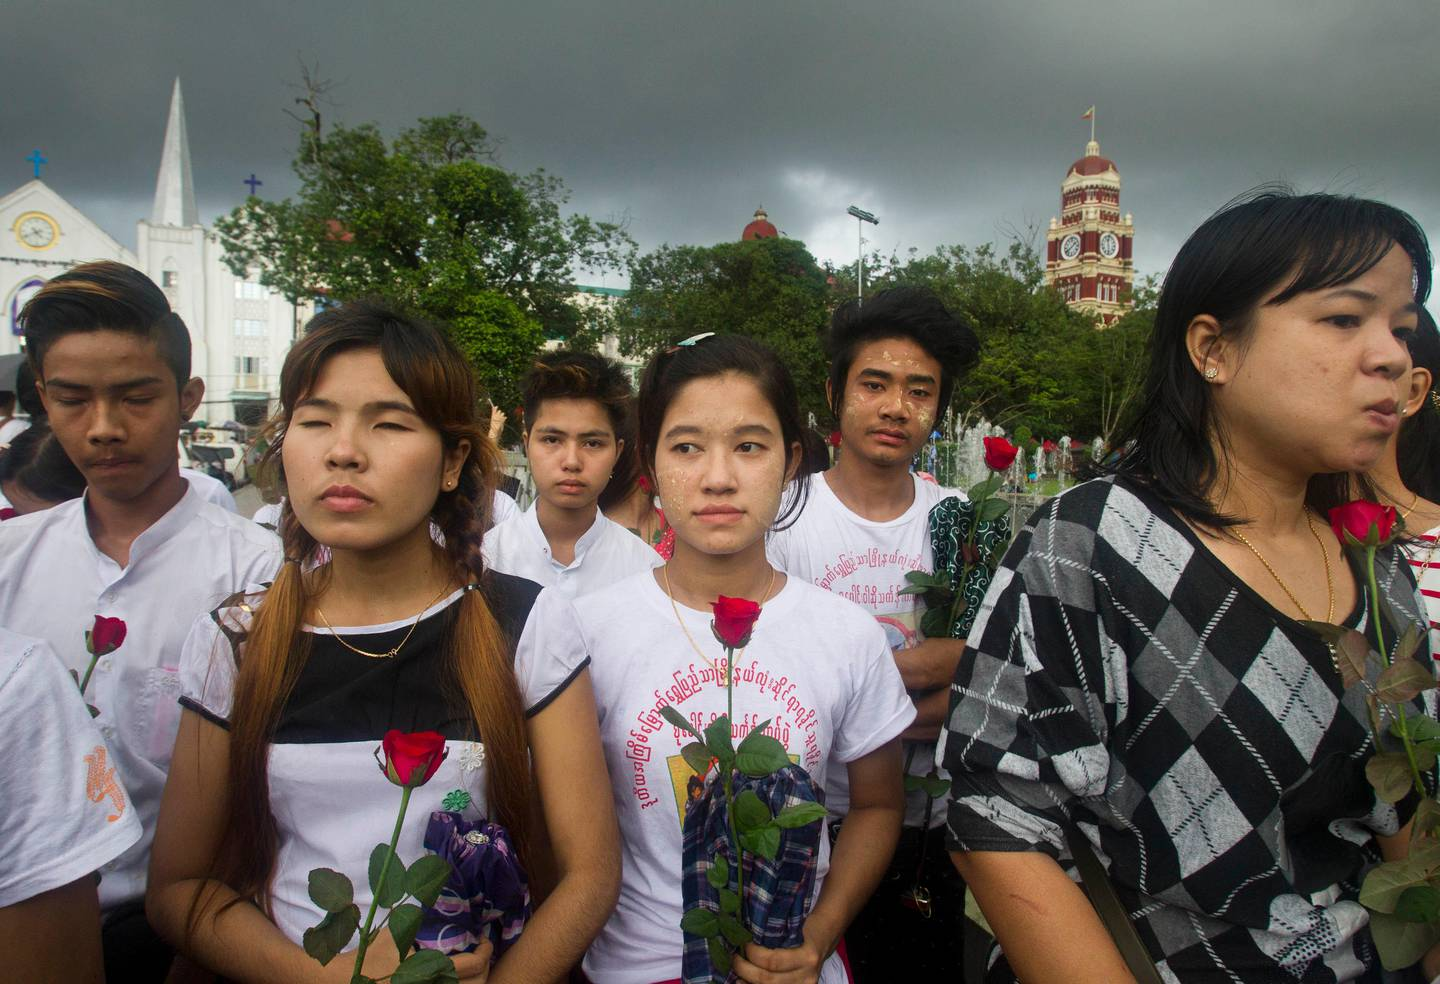 Protesters holding roses attend a protest in front of city hall in Yangon, Myanmar, Sunday Sept. 3, 2017. Myanmar activists took part in a protest Sunday, praying for victims killed during conflict and condemning the attacks carried out in Rakhine state, western Myanmar. (AP Photo)